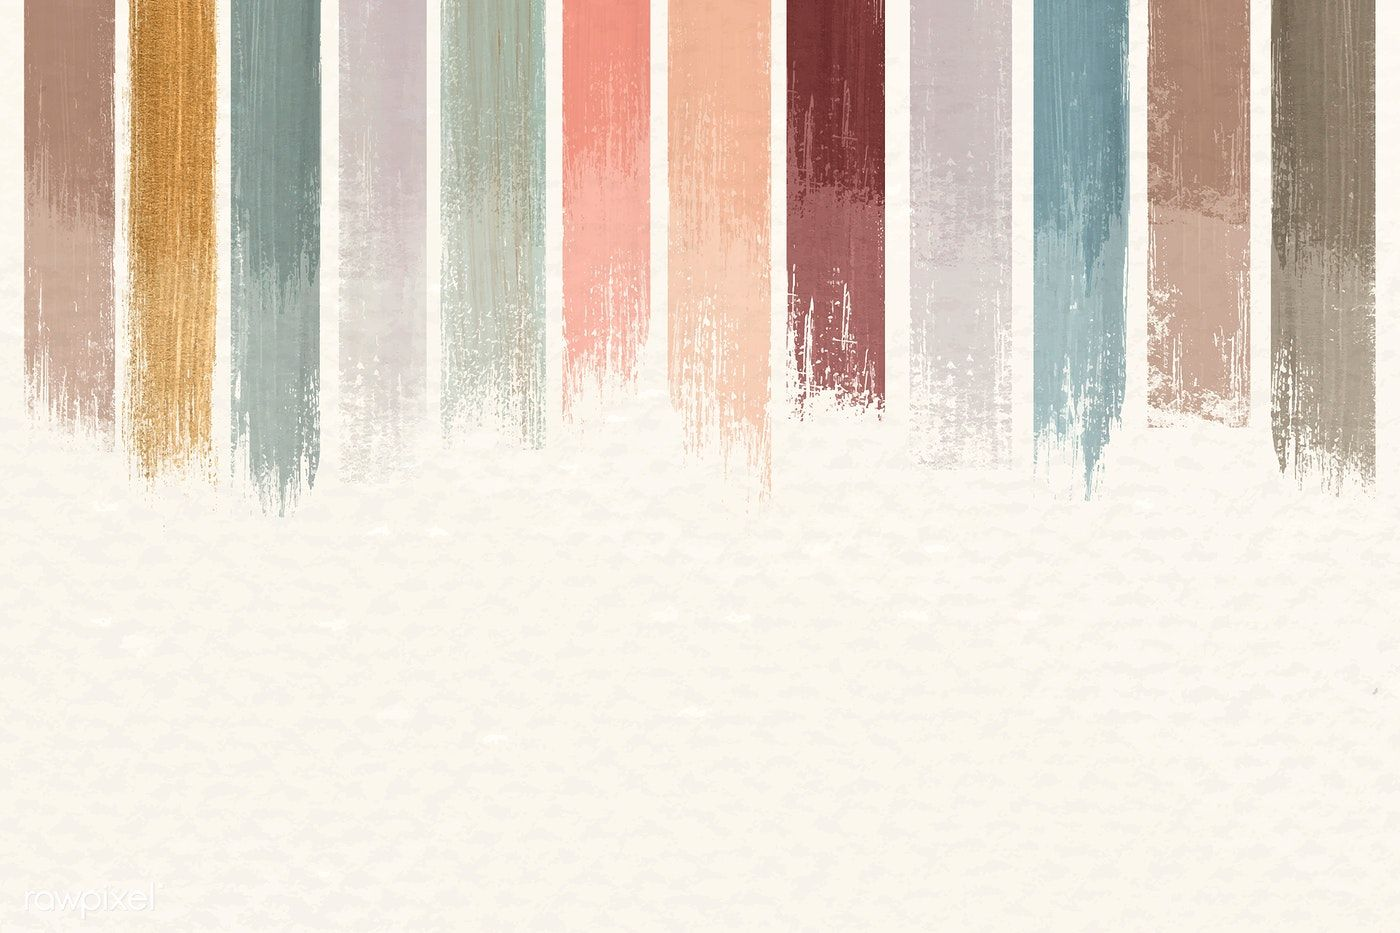 Pastel Acrylic Abstract Background Vector Free Image By Rawpixel Com Adj In 2020 Abstract Backgrounds Abstract Art Wallpaper Abstract